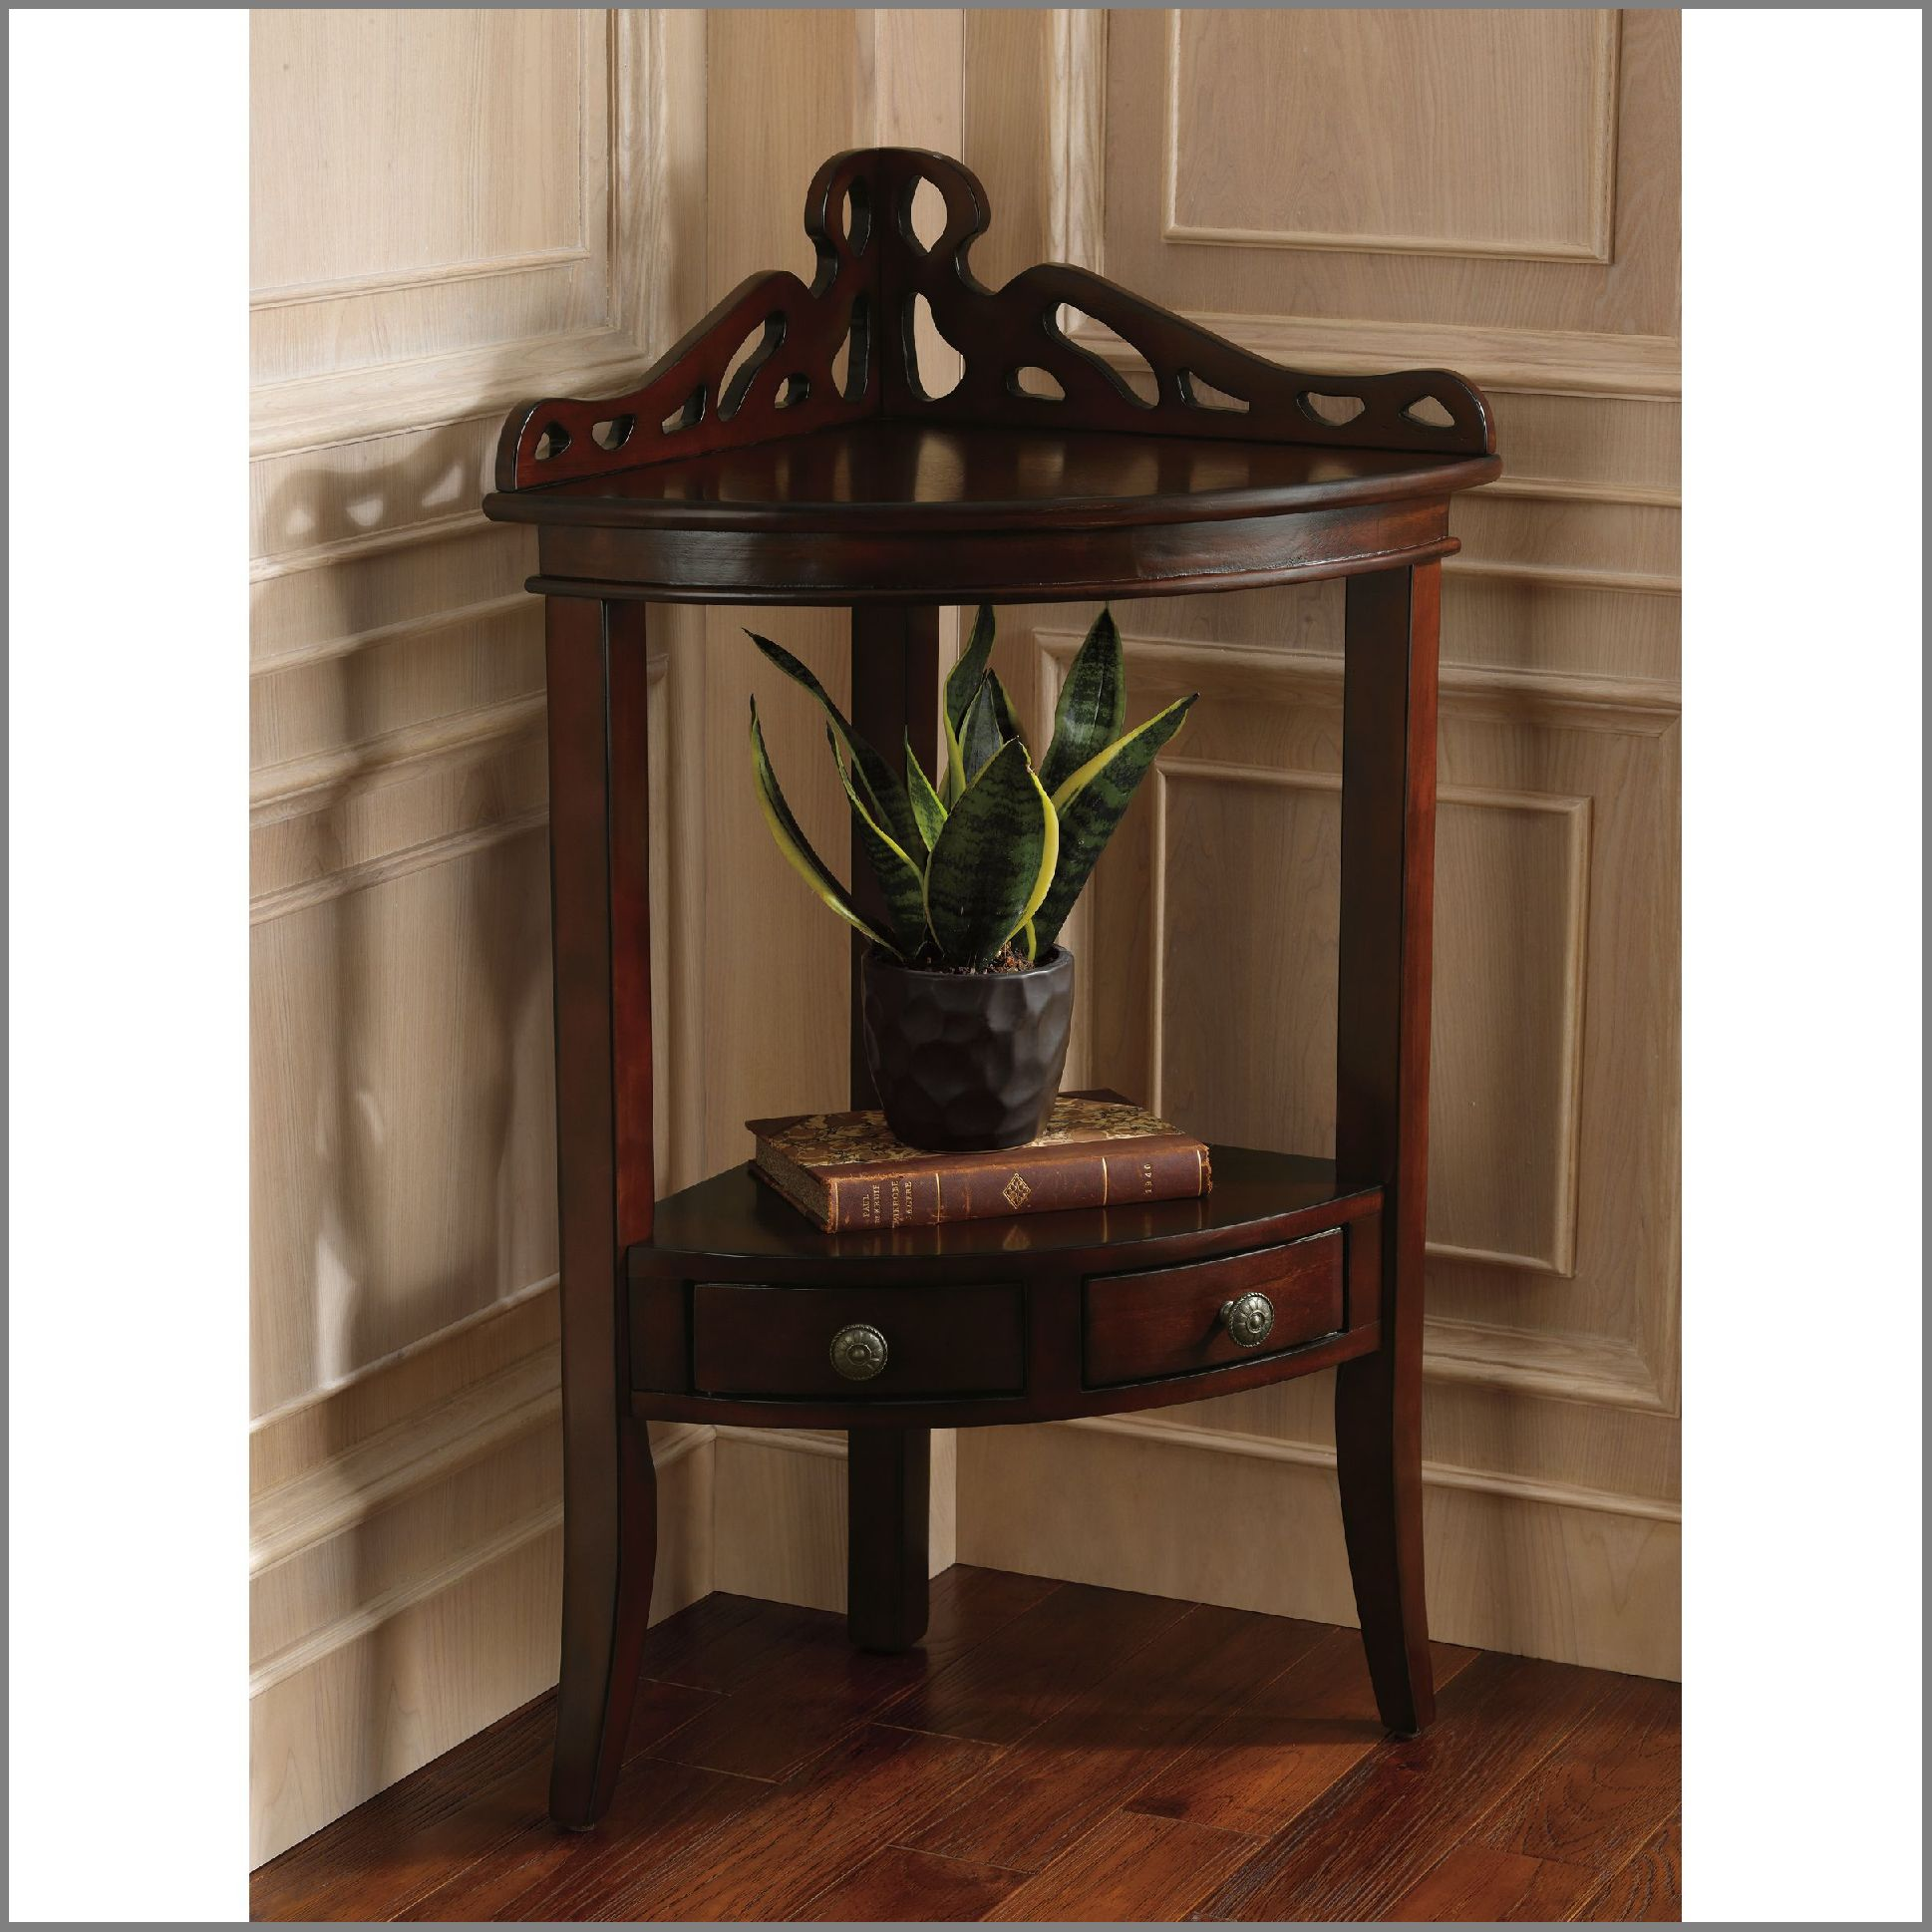 rustic country knotty pine corner entryway benches sturbridge best the grace accent table perfect piece fit elegantly black entry dining room sets barn door console wooden home